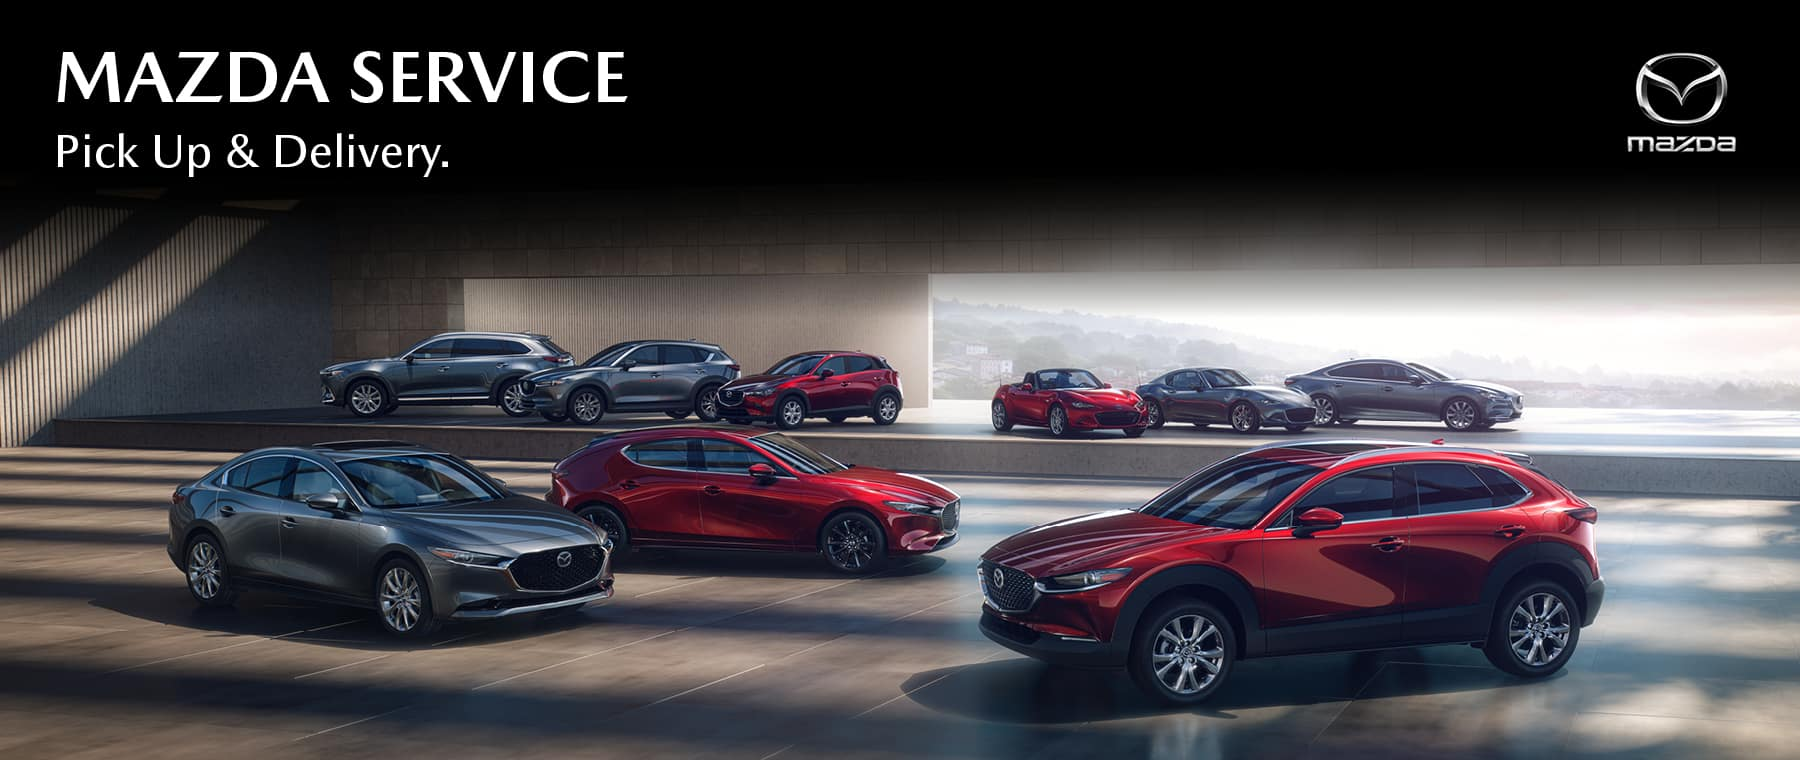 Gunther Mazda Pick Up & Delivery Service